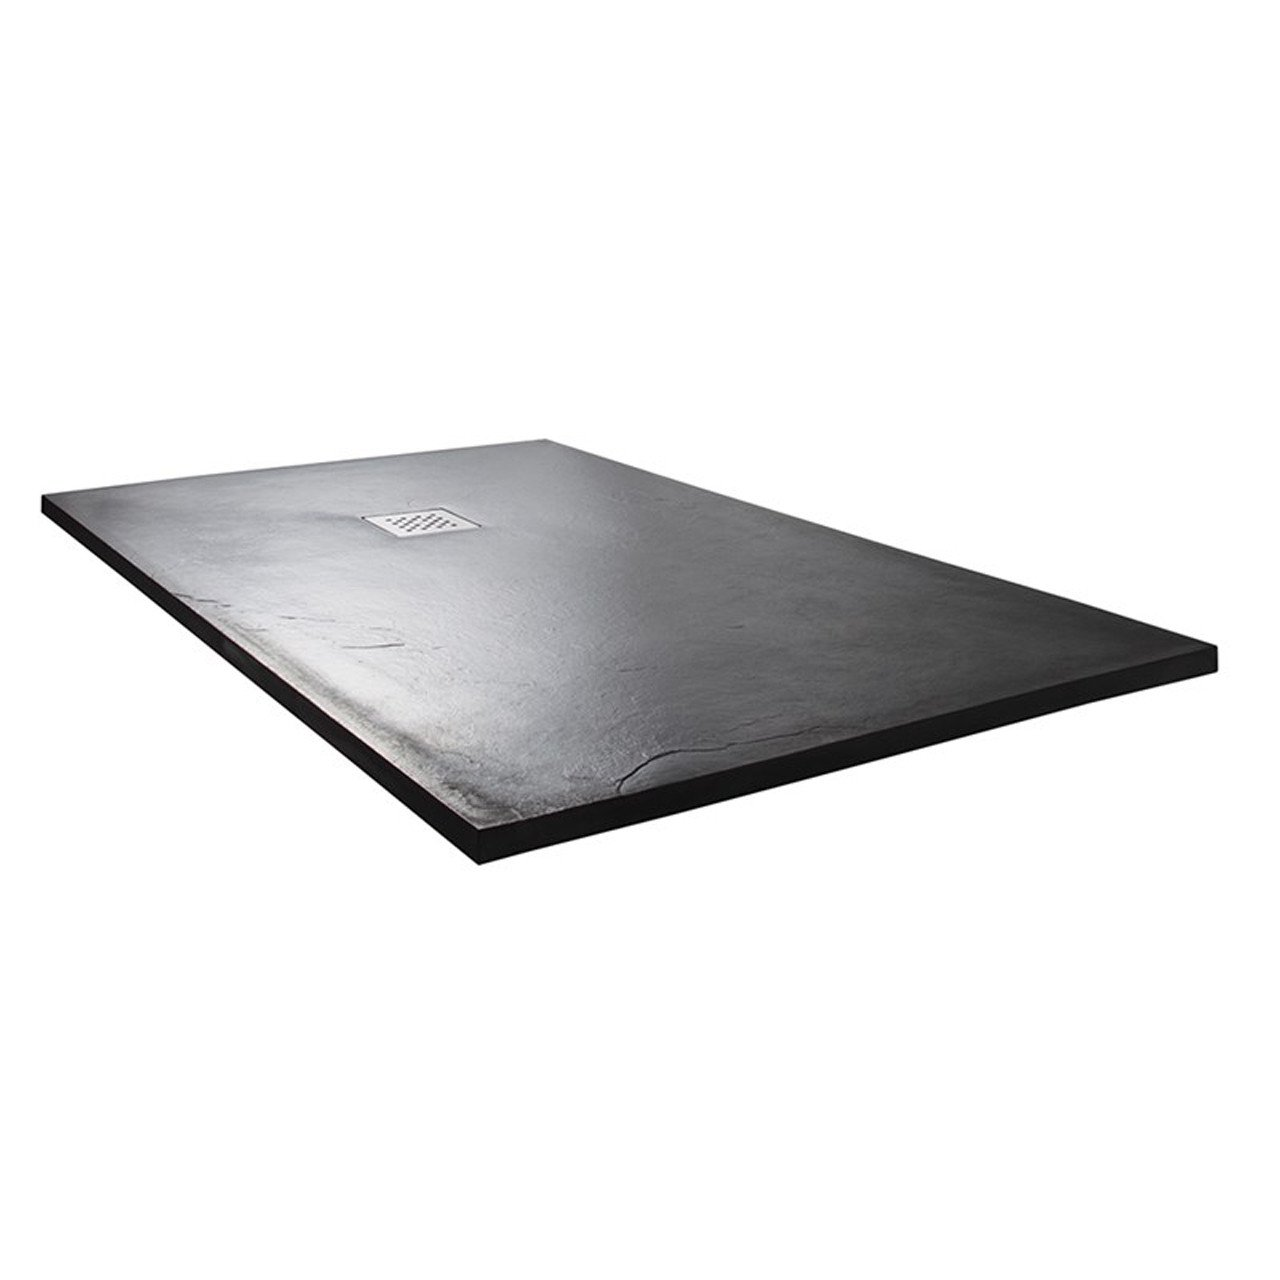 Wholestone Slate 1400mm x 900mm Anthracite Rectangular Shower Tray